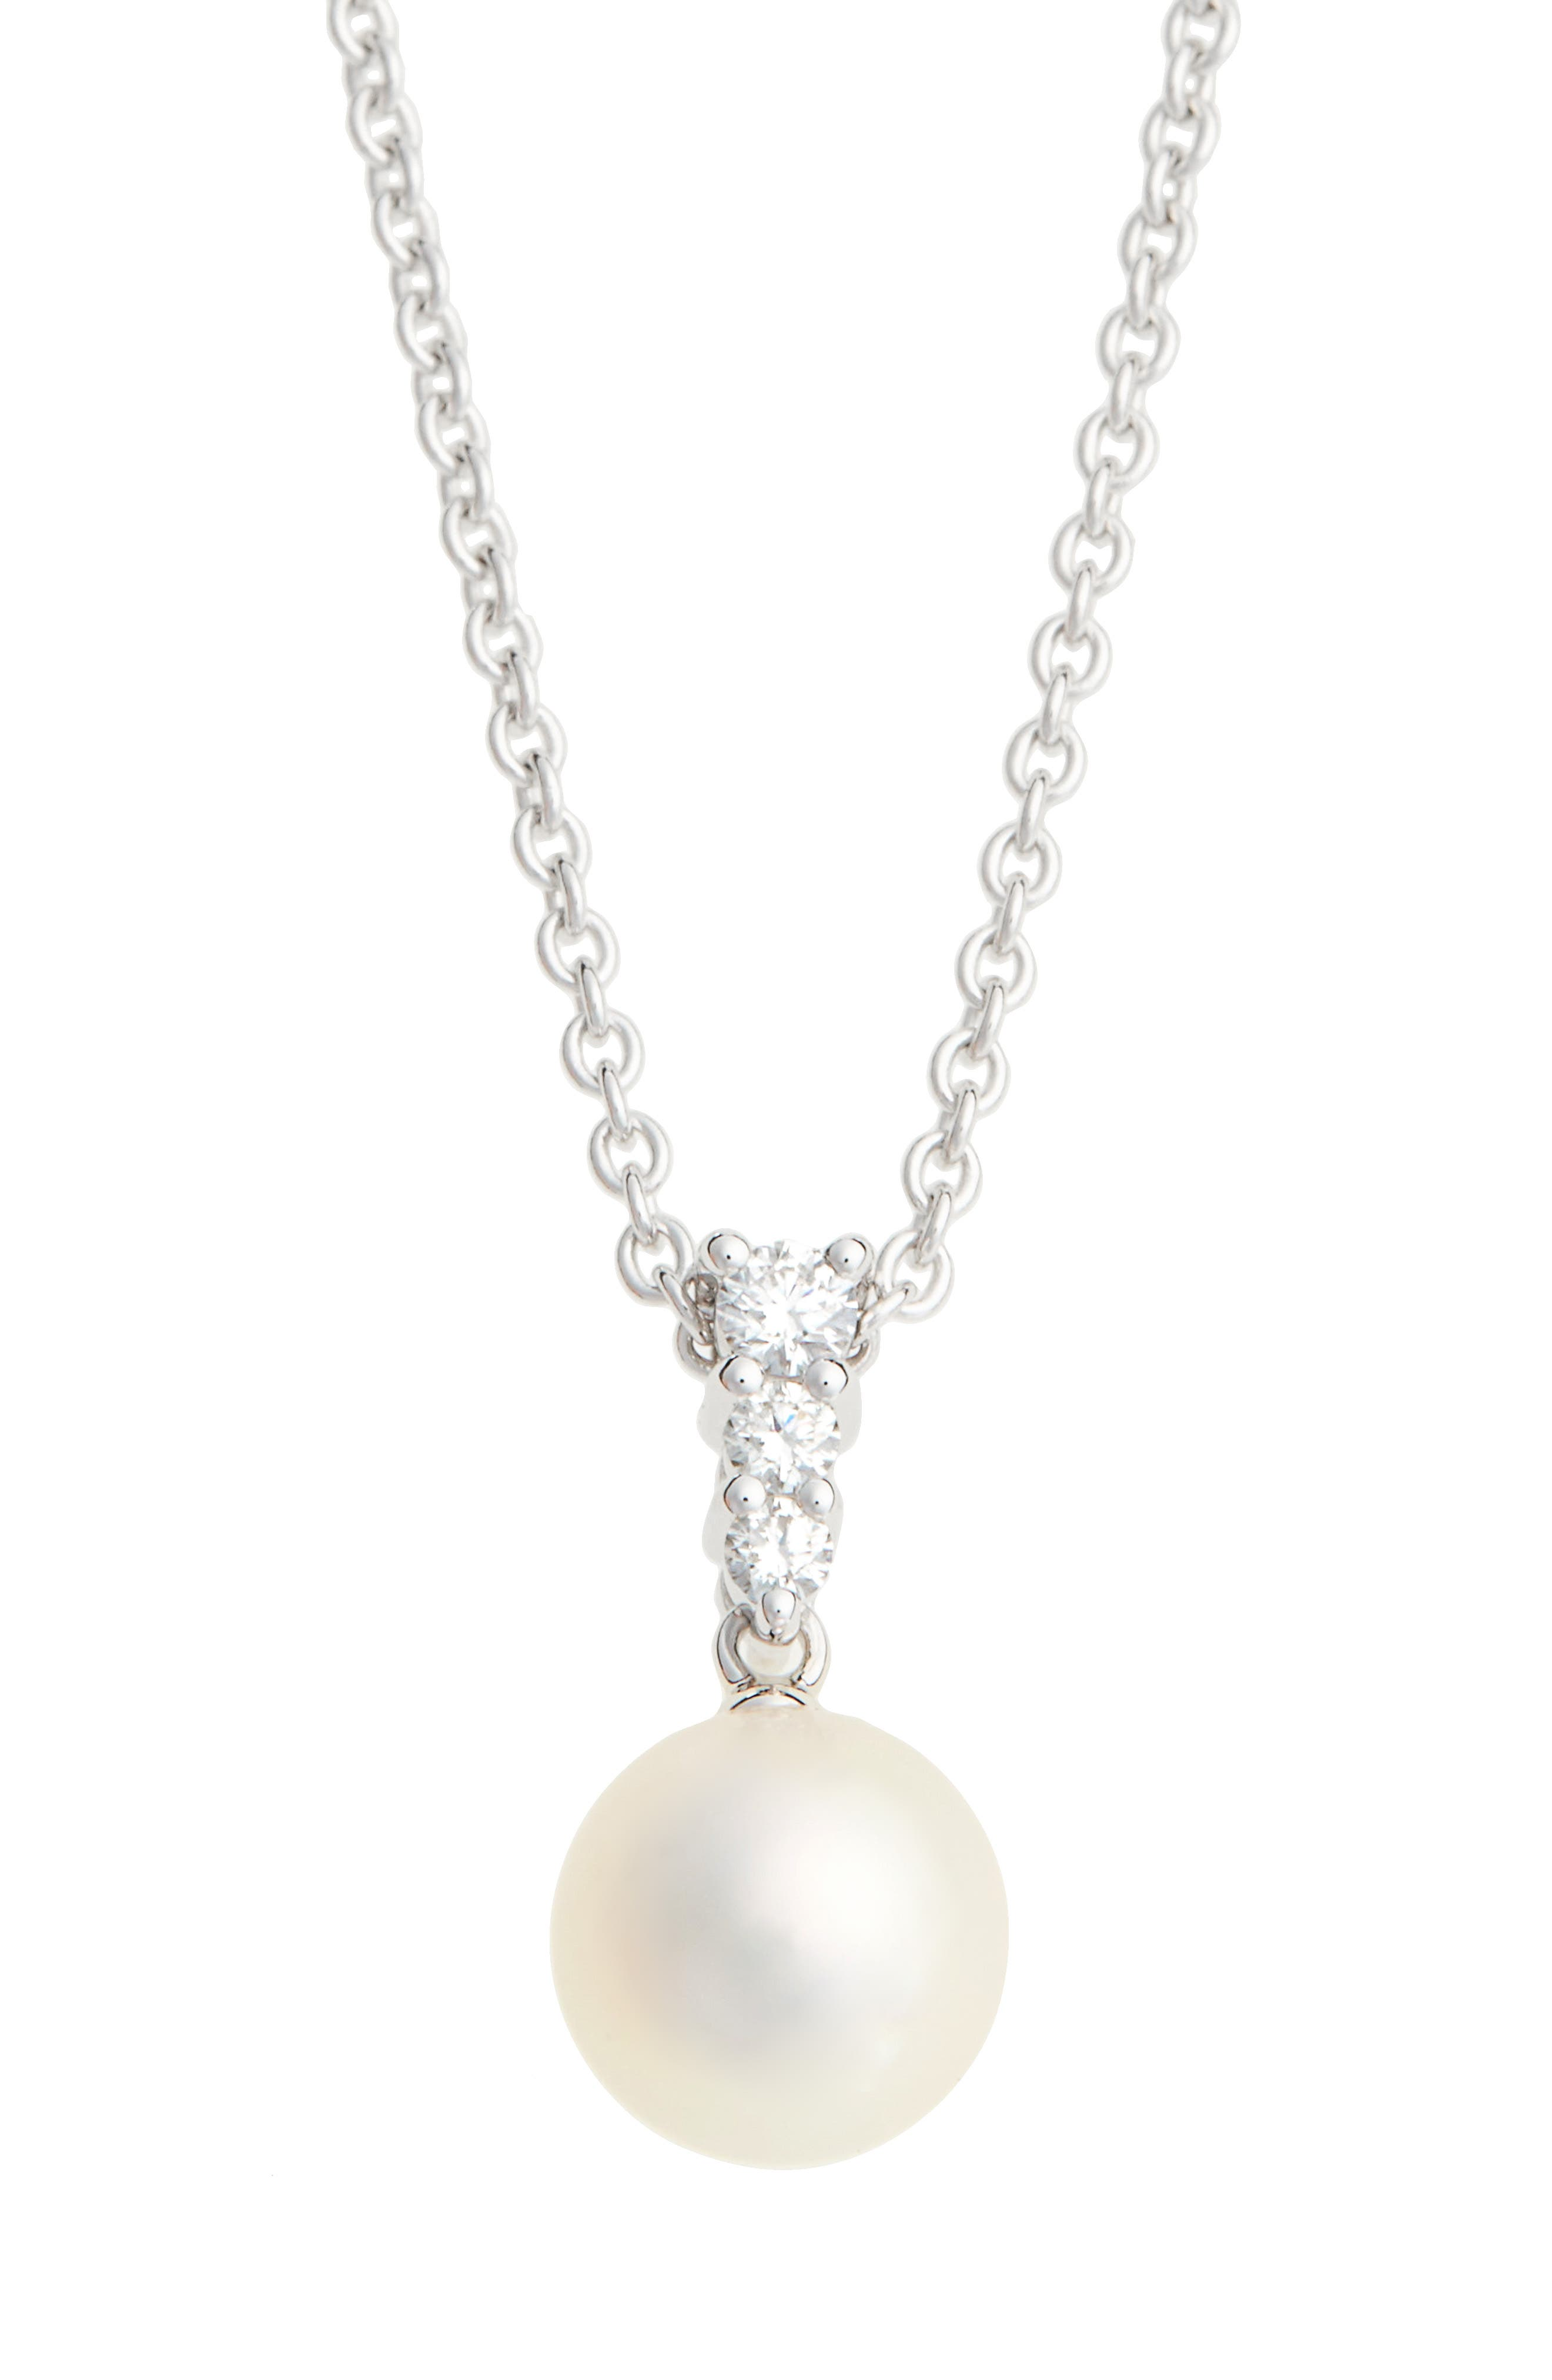 'Morning Dew' Akoya Cultured Pearl & Diamond Pendant Necklace,                             Alternate thumbnail 2, color,                             WHITE GOLD